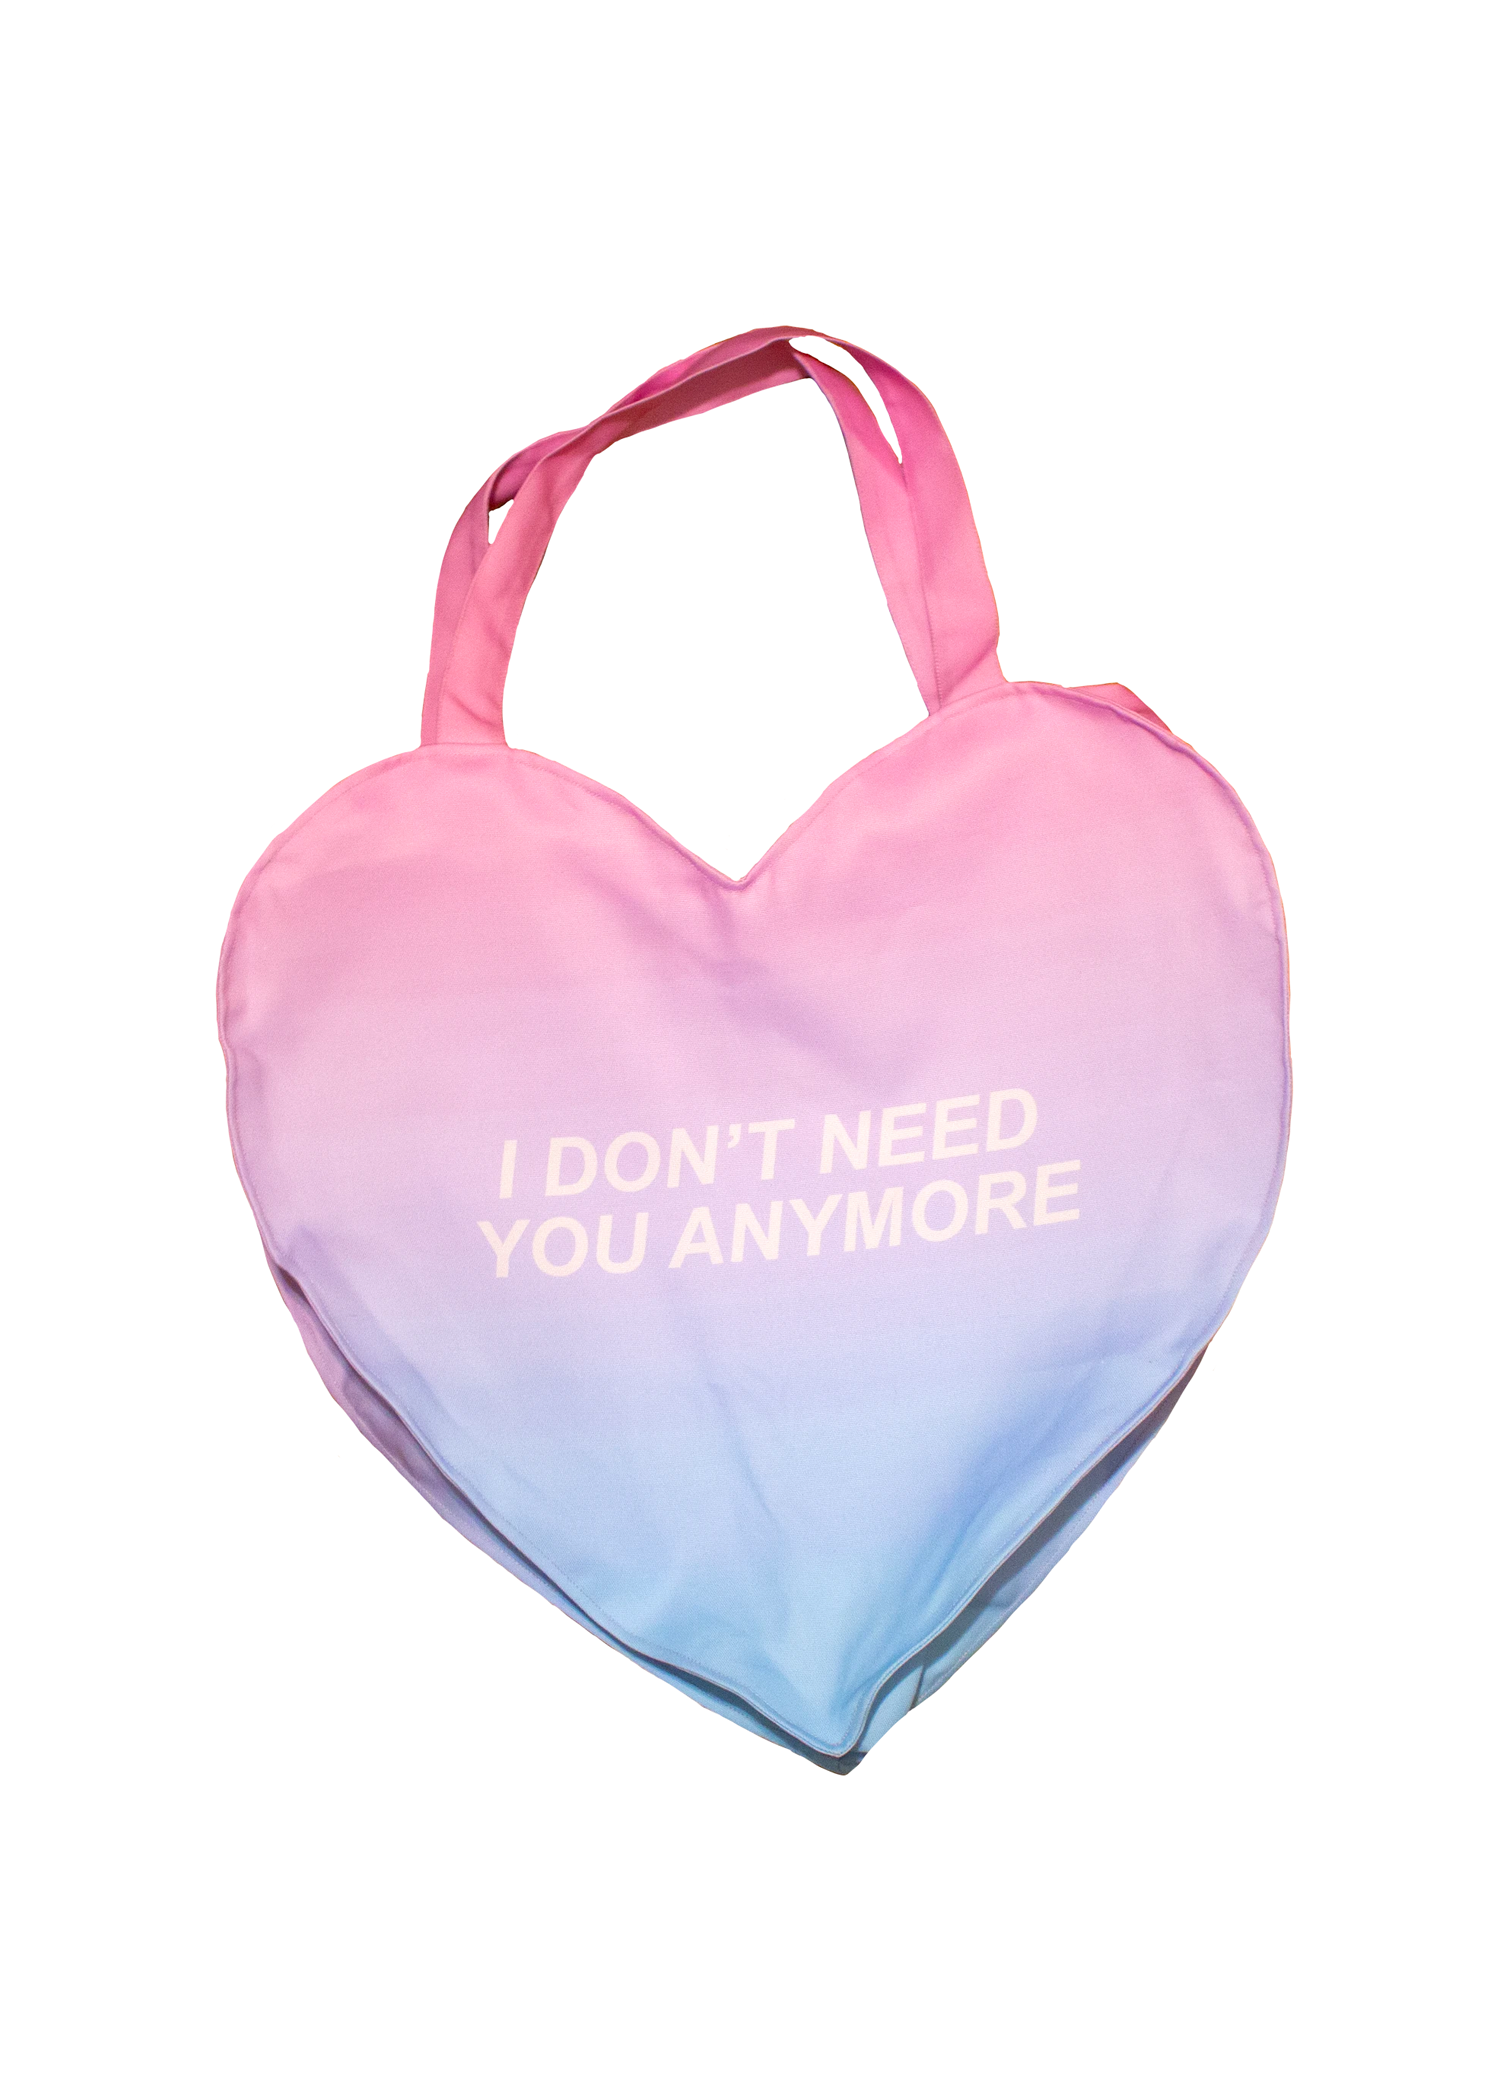 Moved On Giant Heart Tote